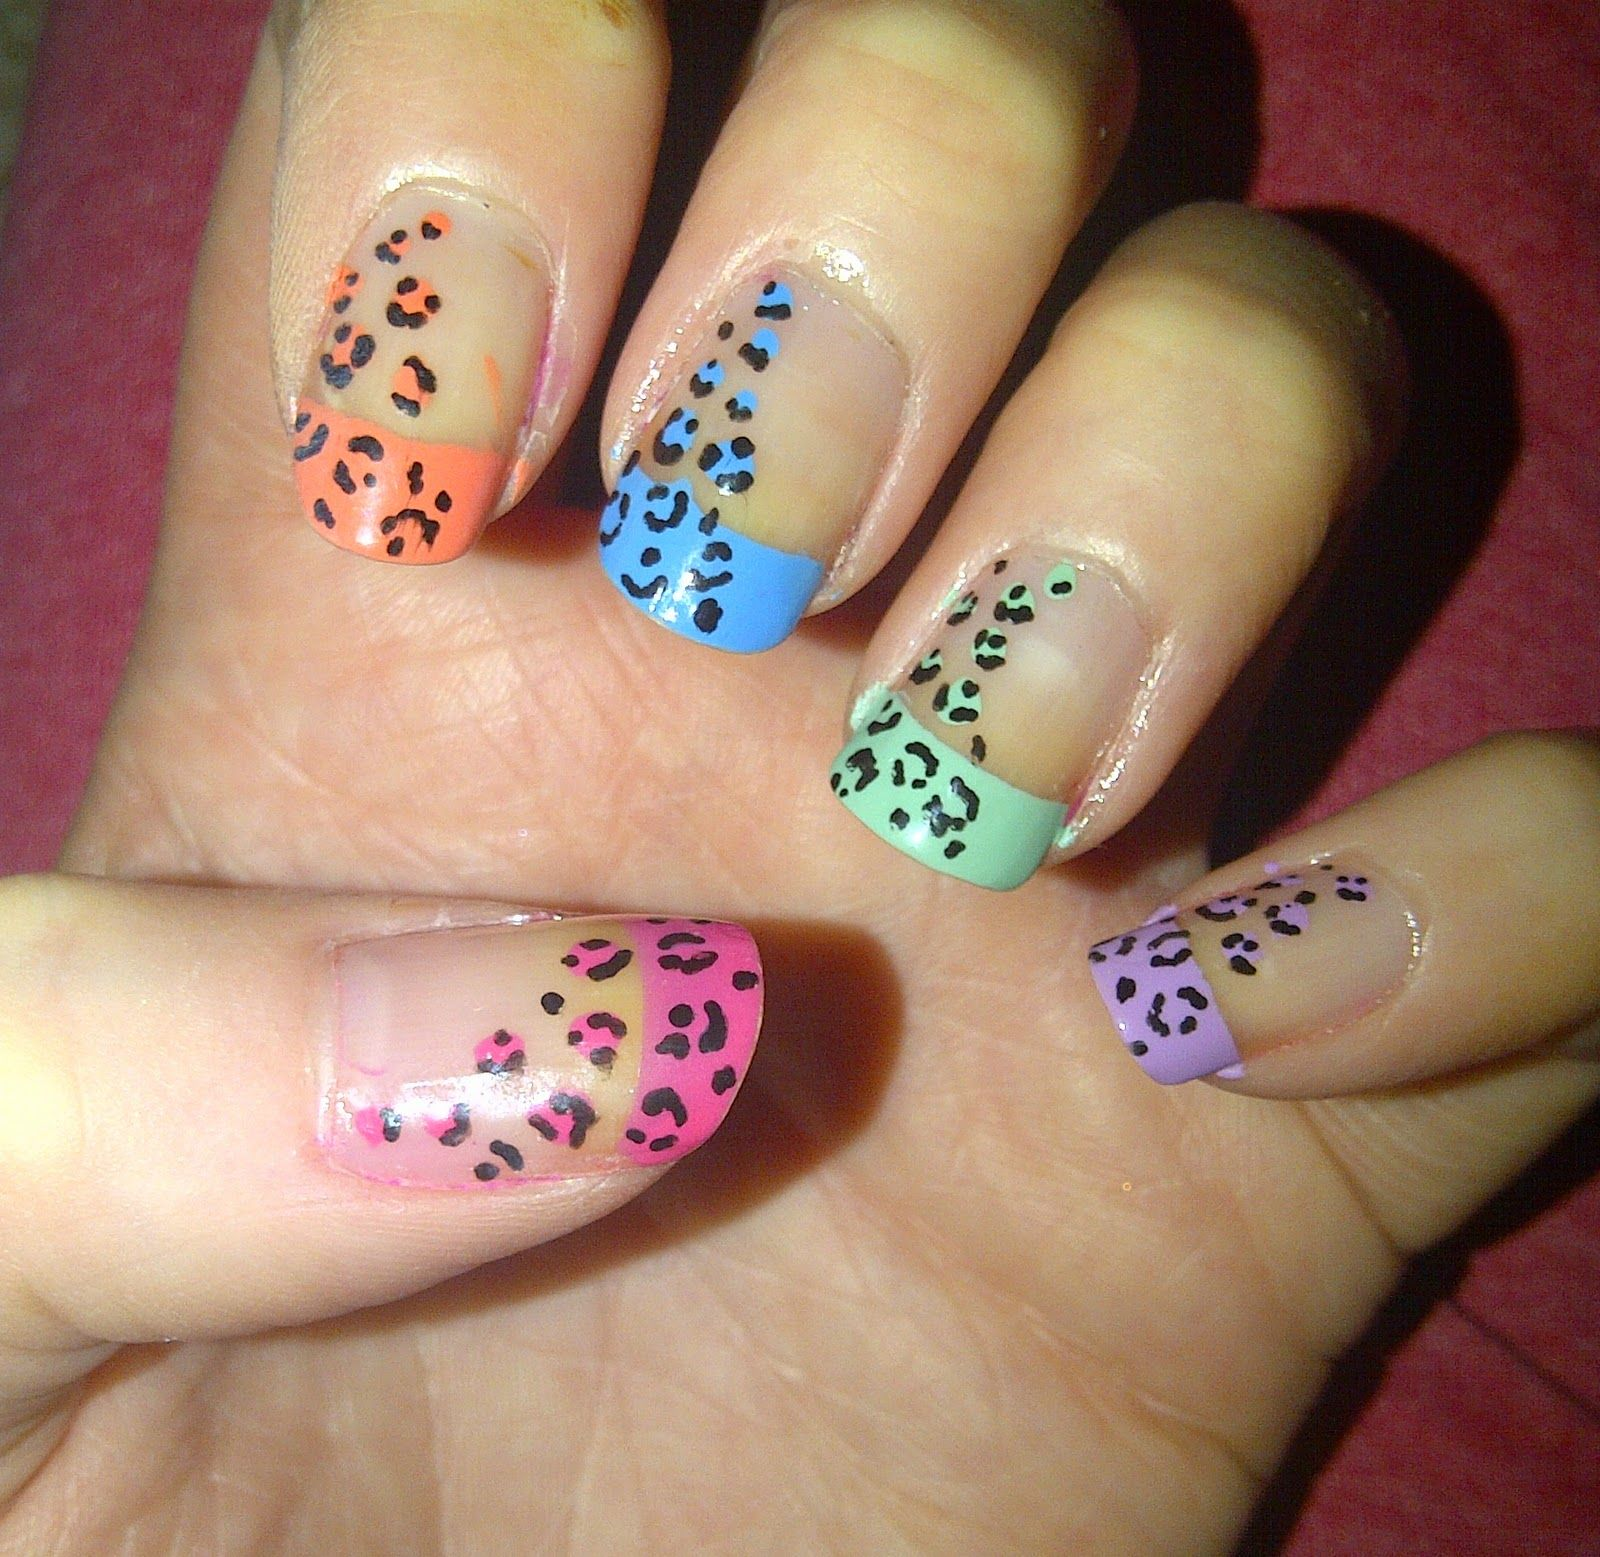 Leopard Acrylic Nail Designs   of 7 - Colourful Leopard   Things to ...